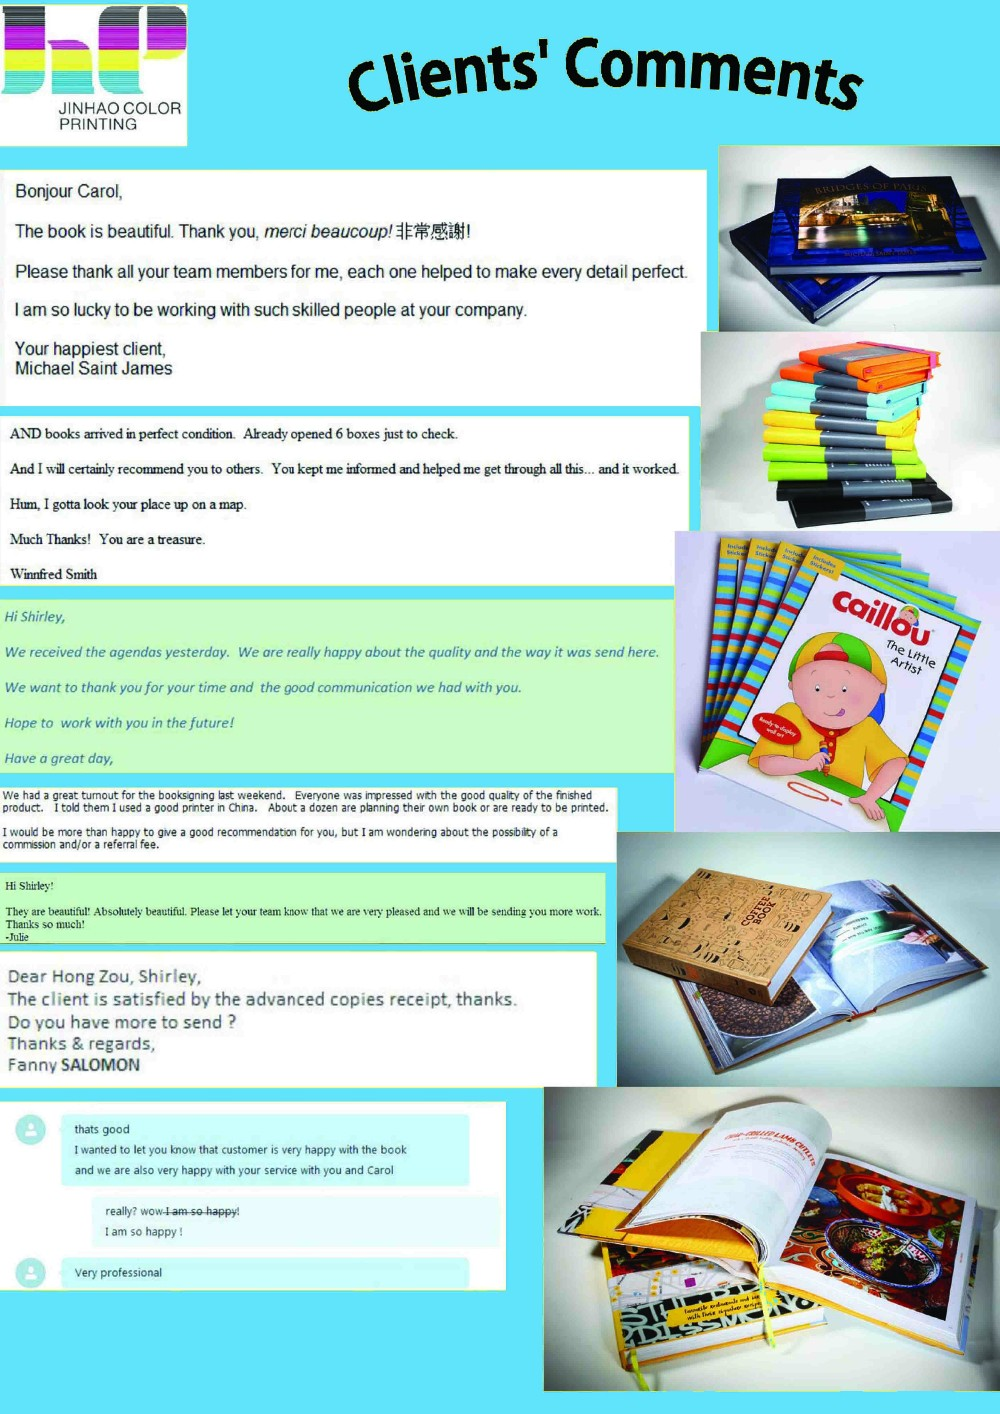 Color printing quotes - Short Run Low Cost Magazine Printing Quotes Square Full Color School Magazine Printing